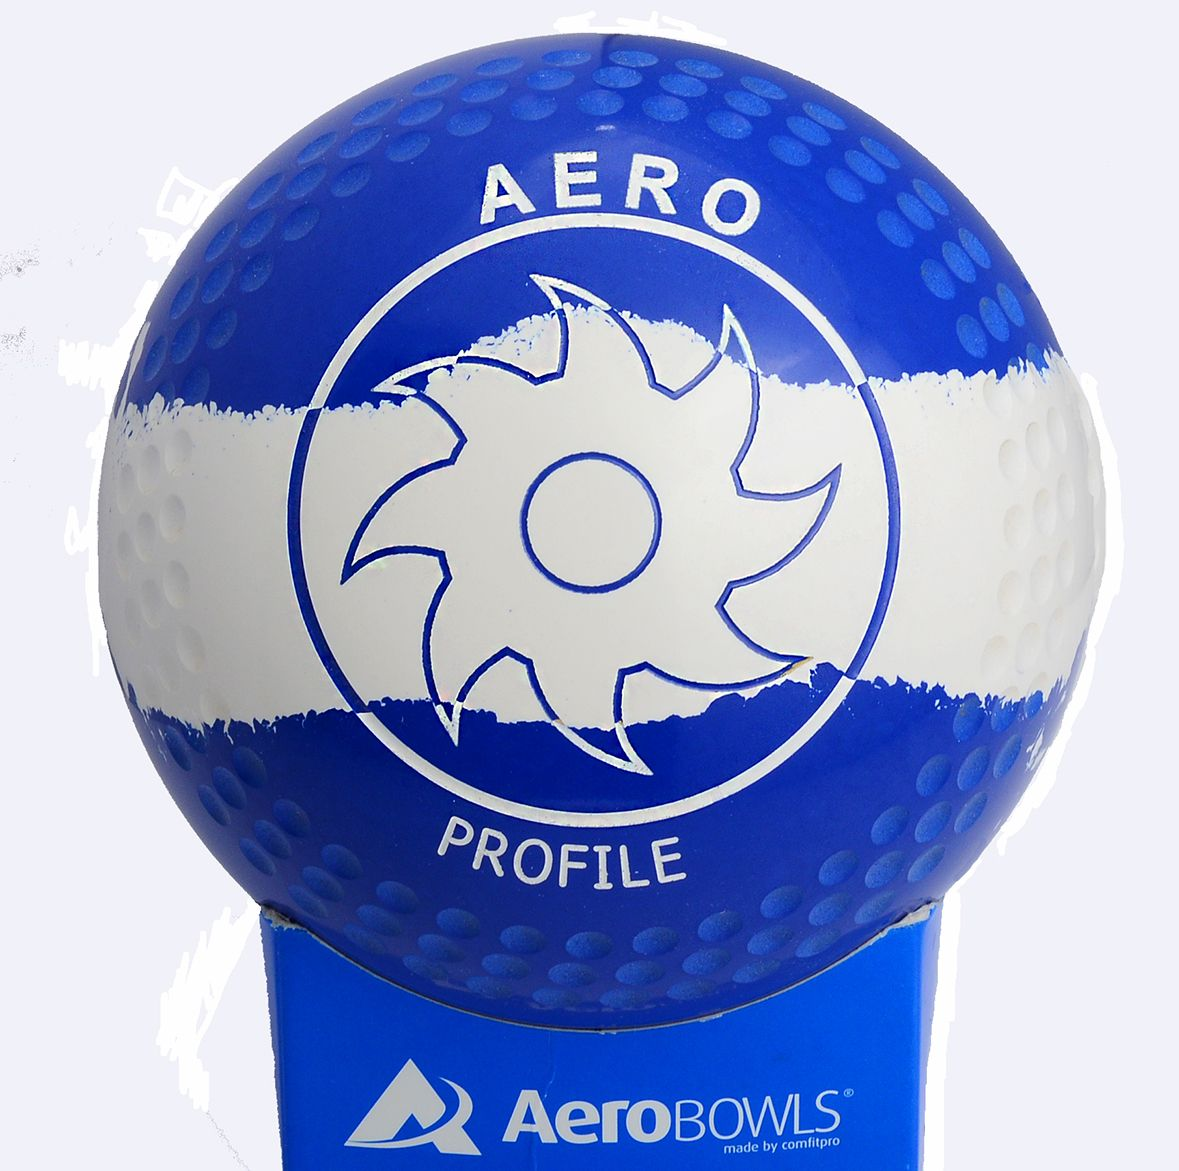 Aero Profile lawn bowl with premium color blue/white/blue